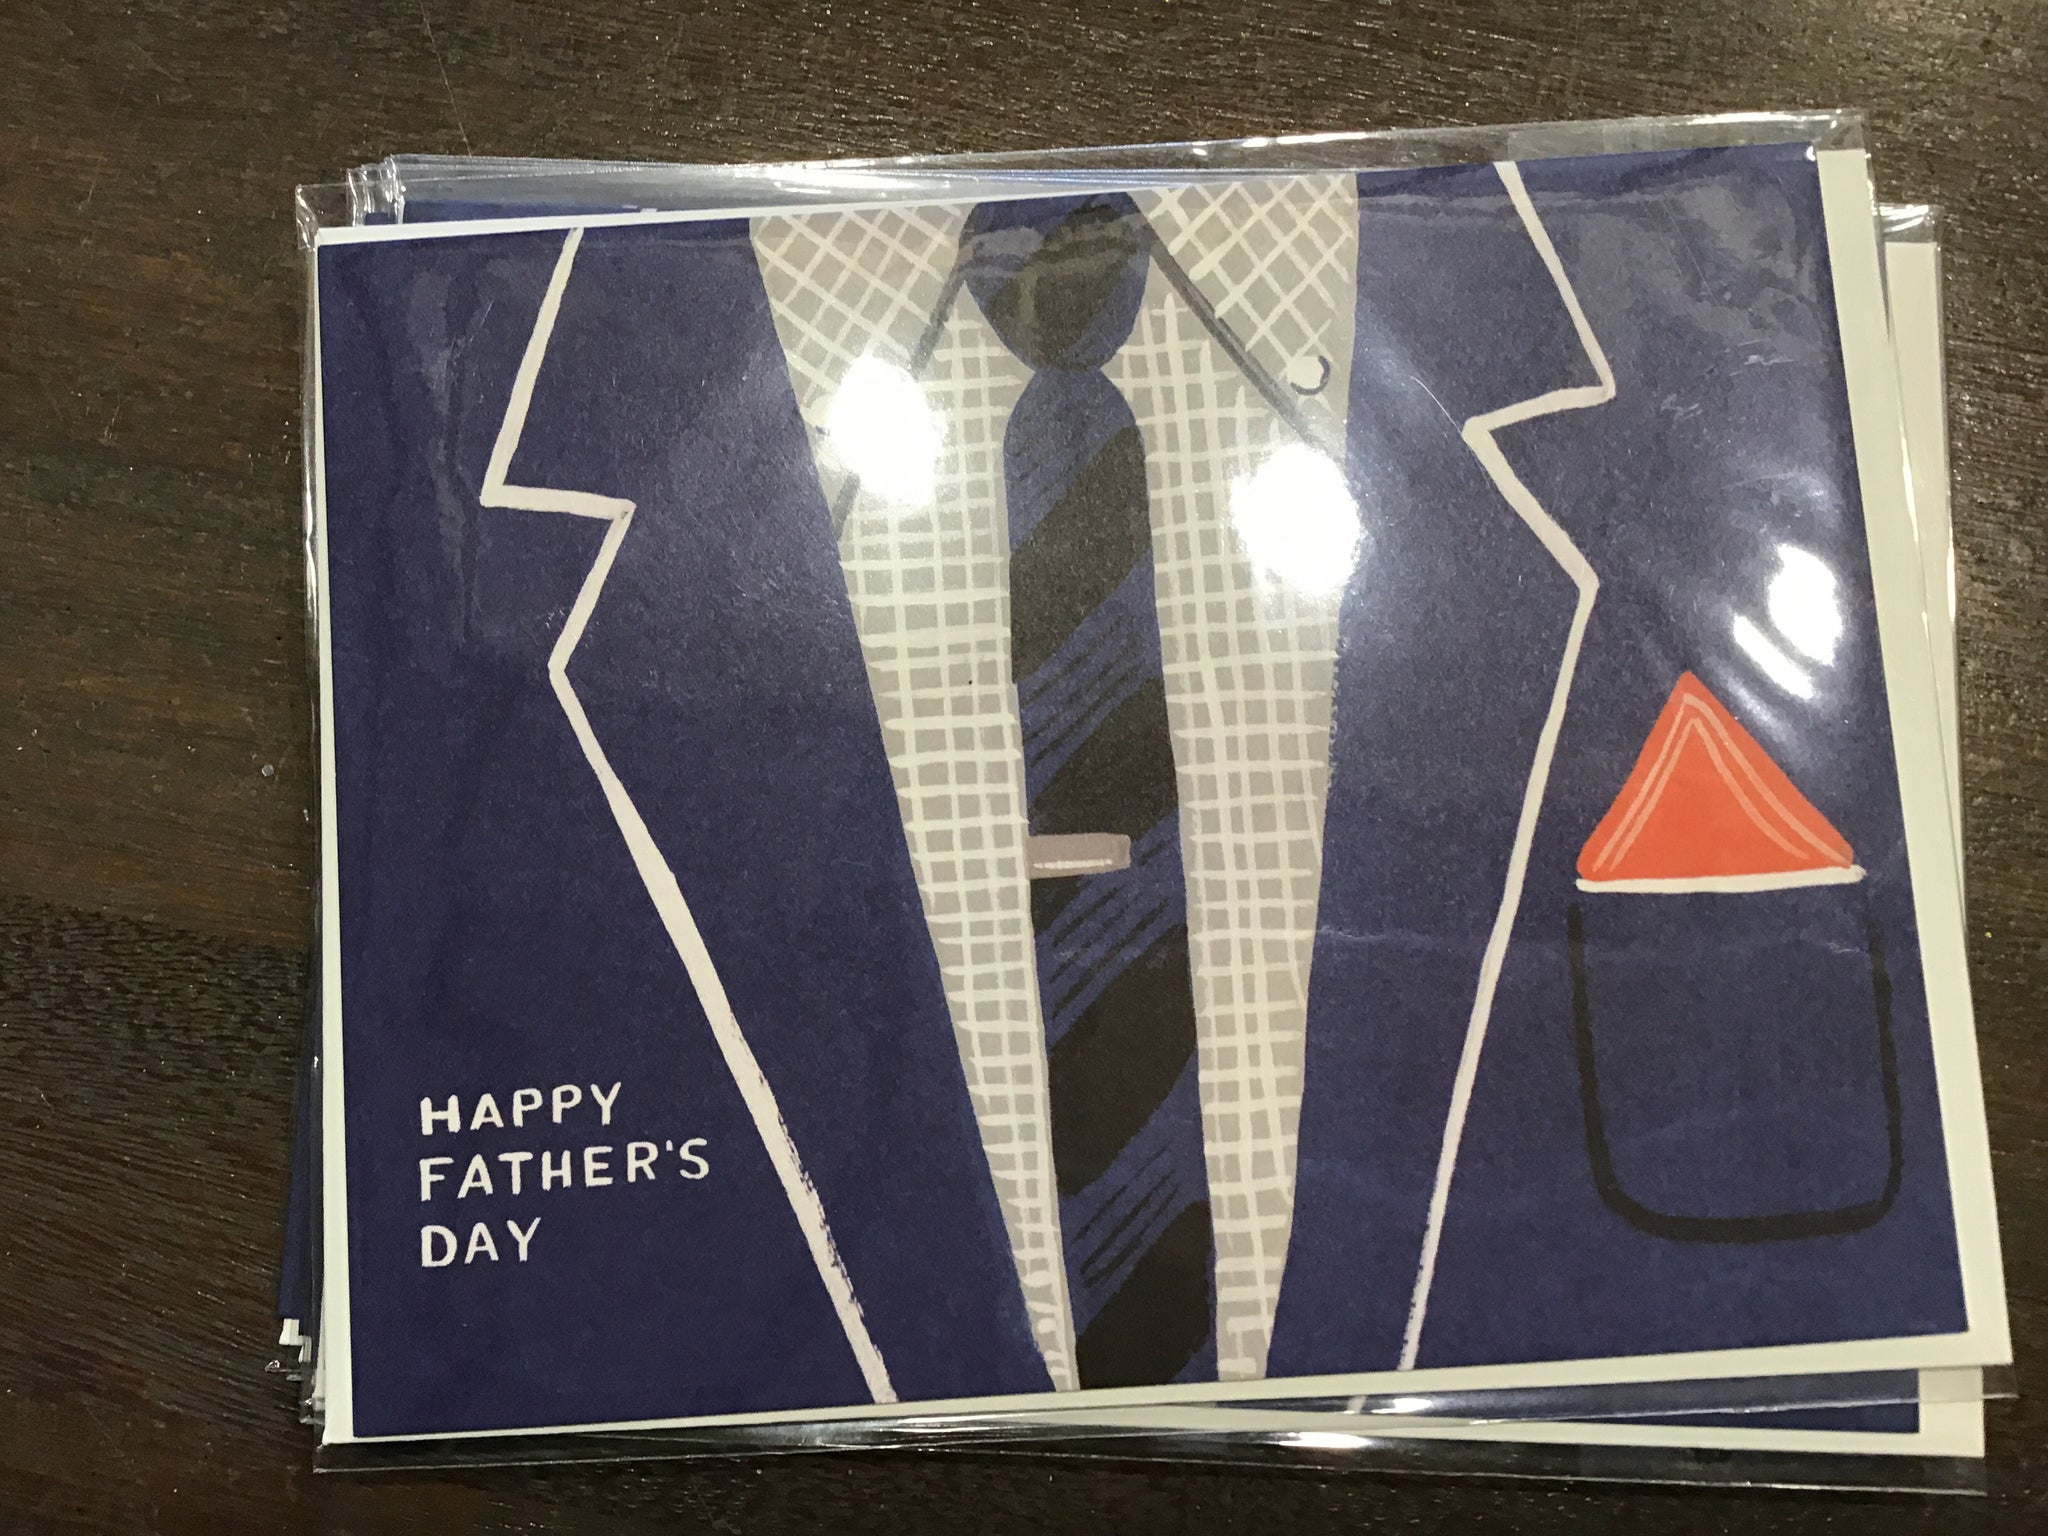 Rifle happy Father's Day card